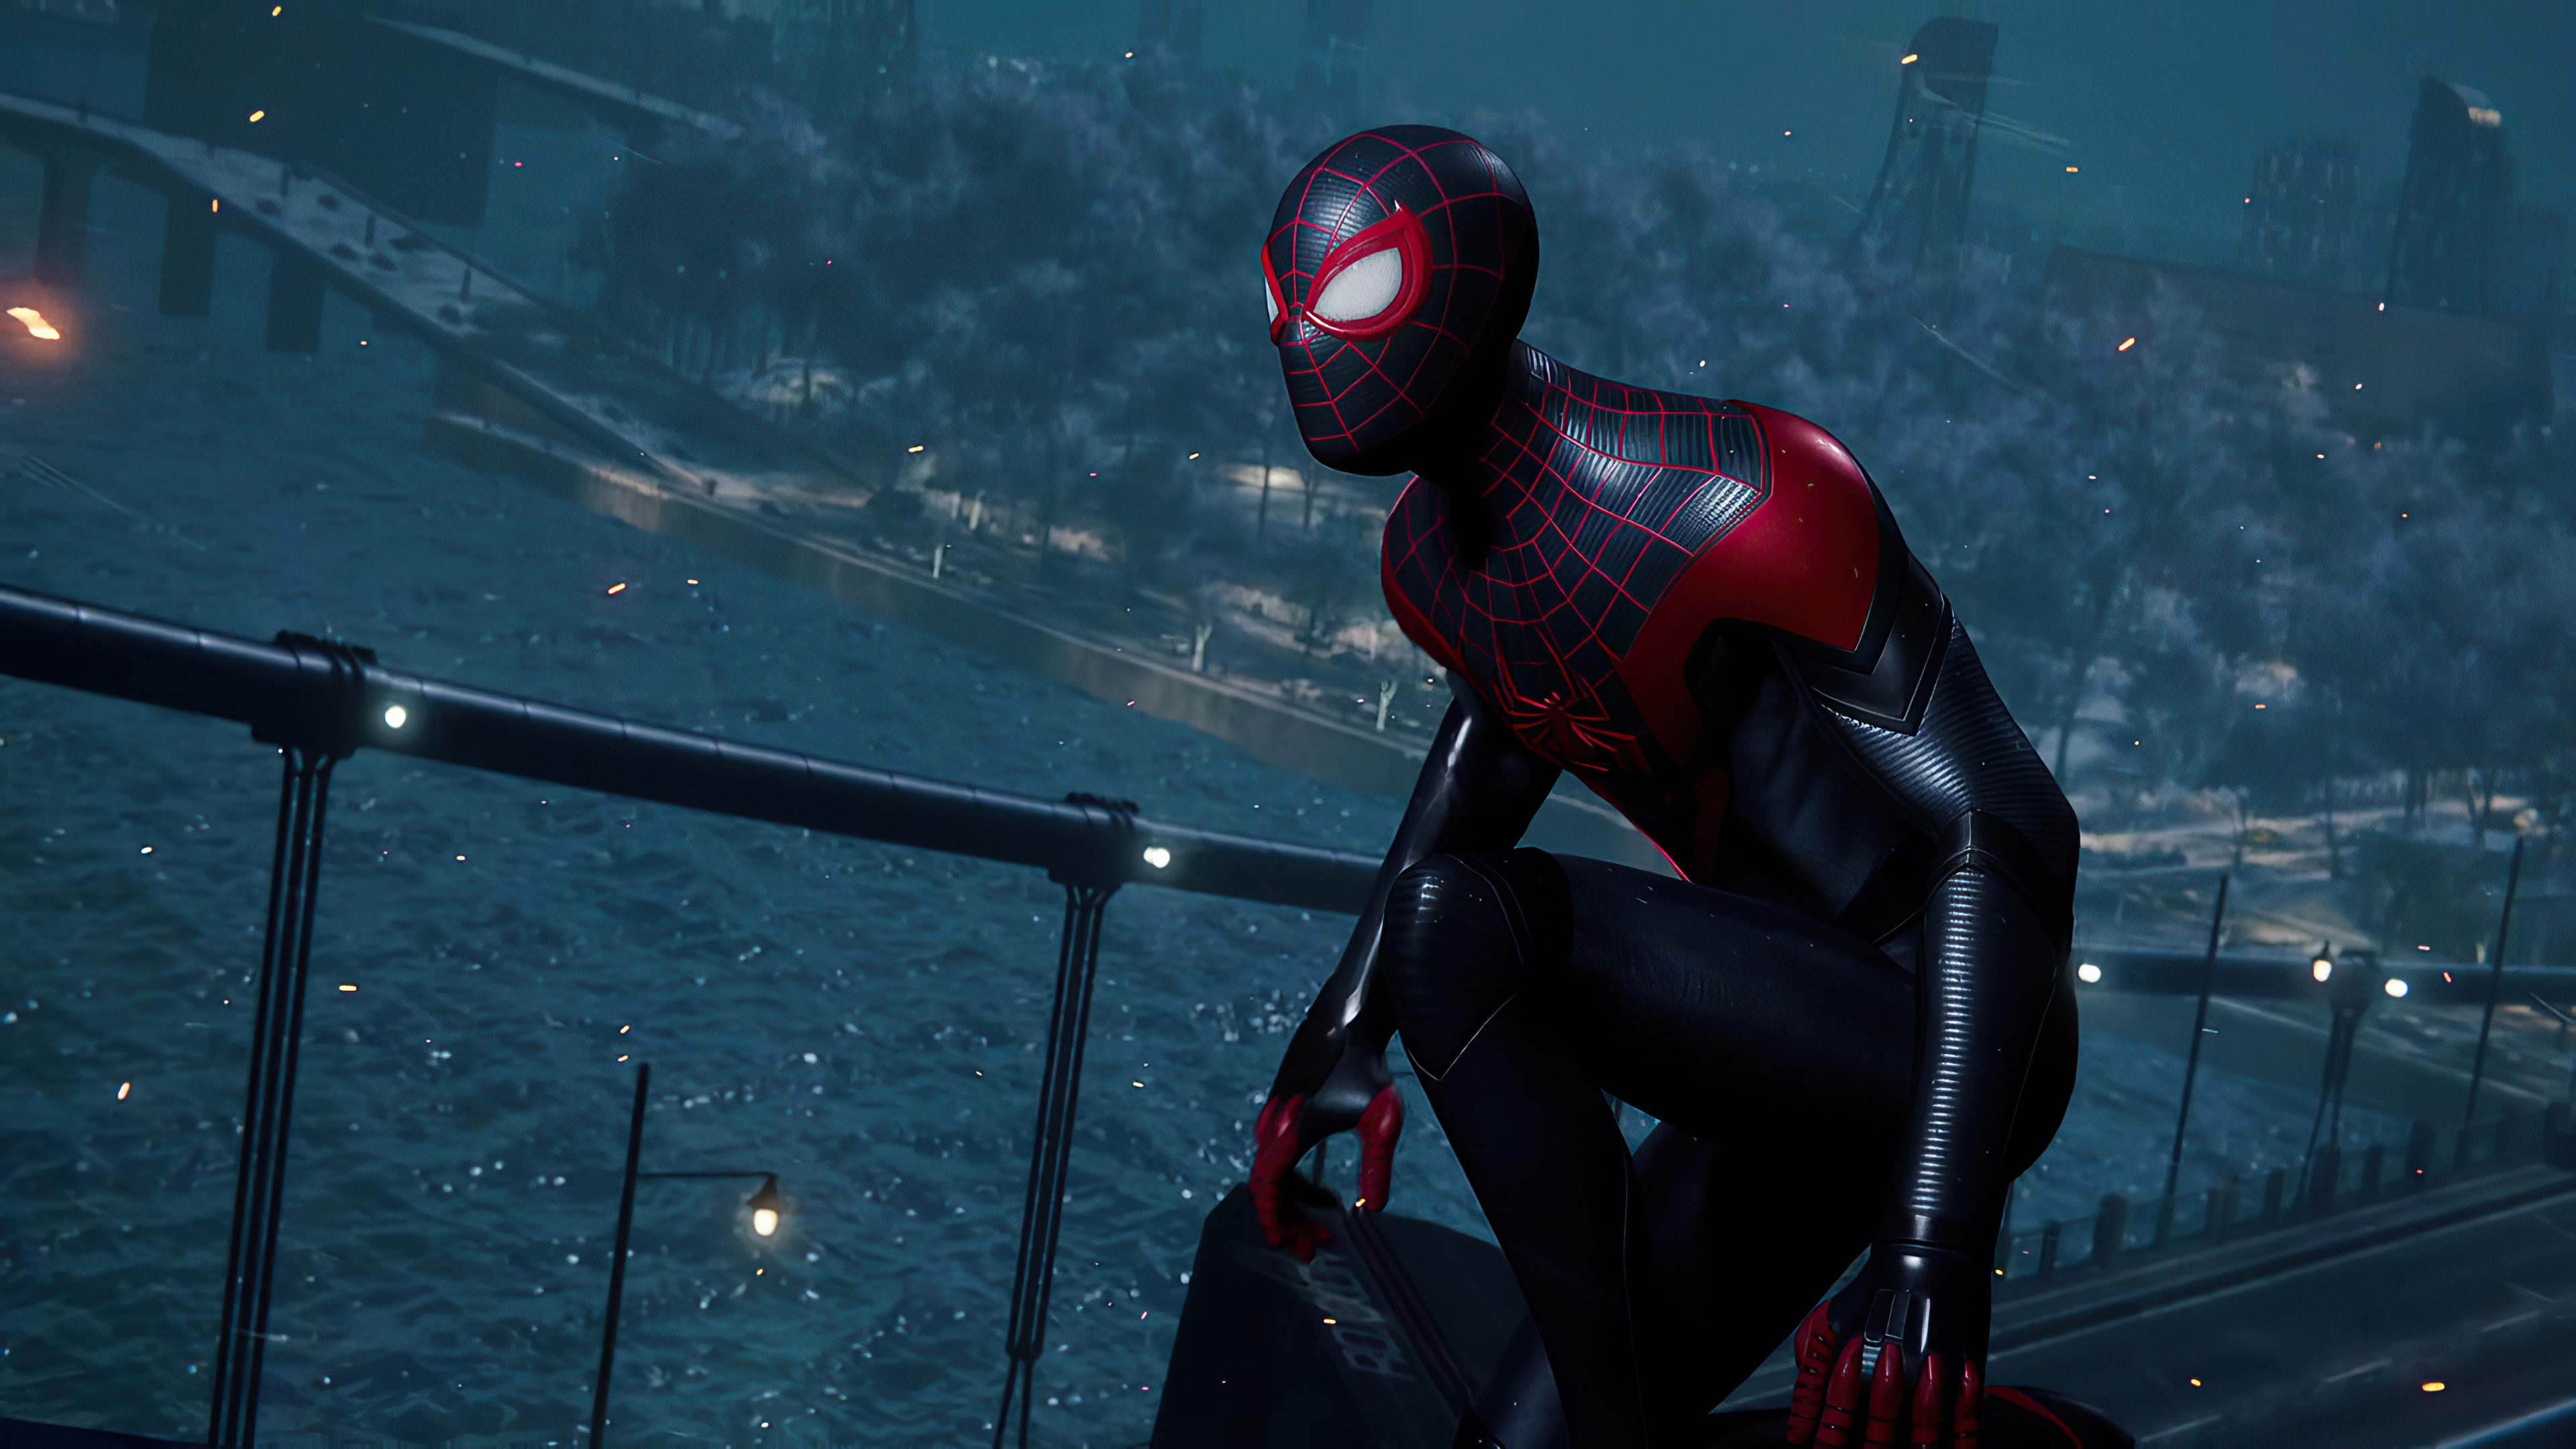 2020 Marvels Spider Man Miles Morales Ps5 4k Hd Games 4k Wallpapers Images Backgrounds Photos And Pictures